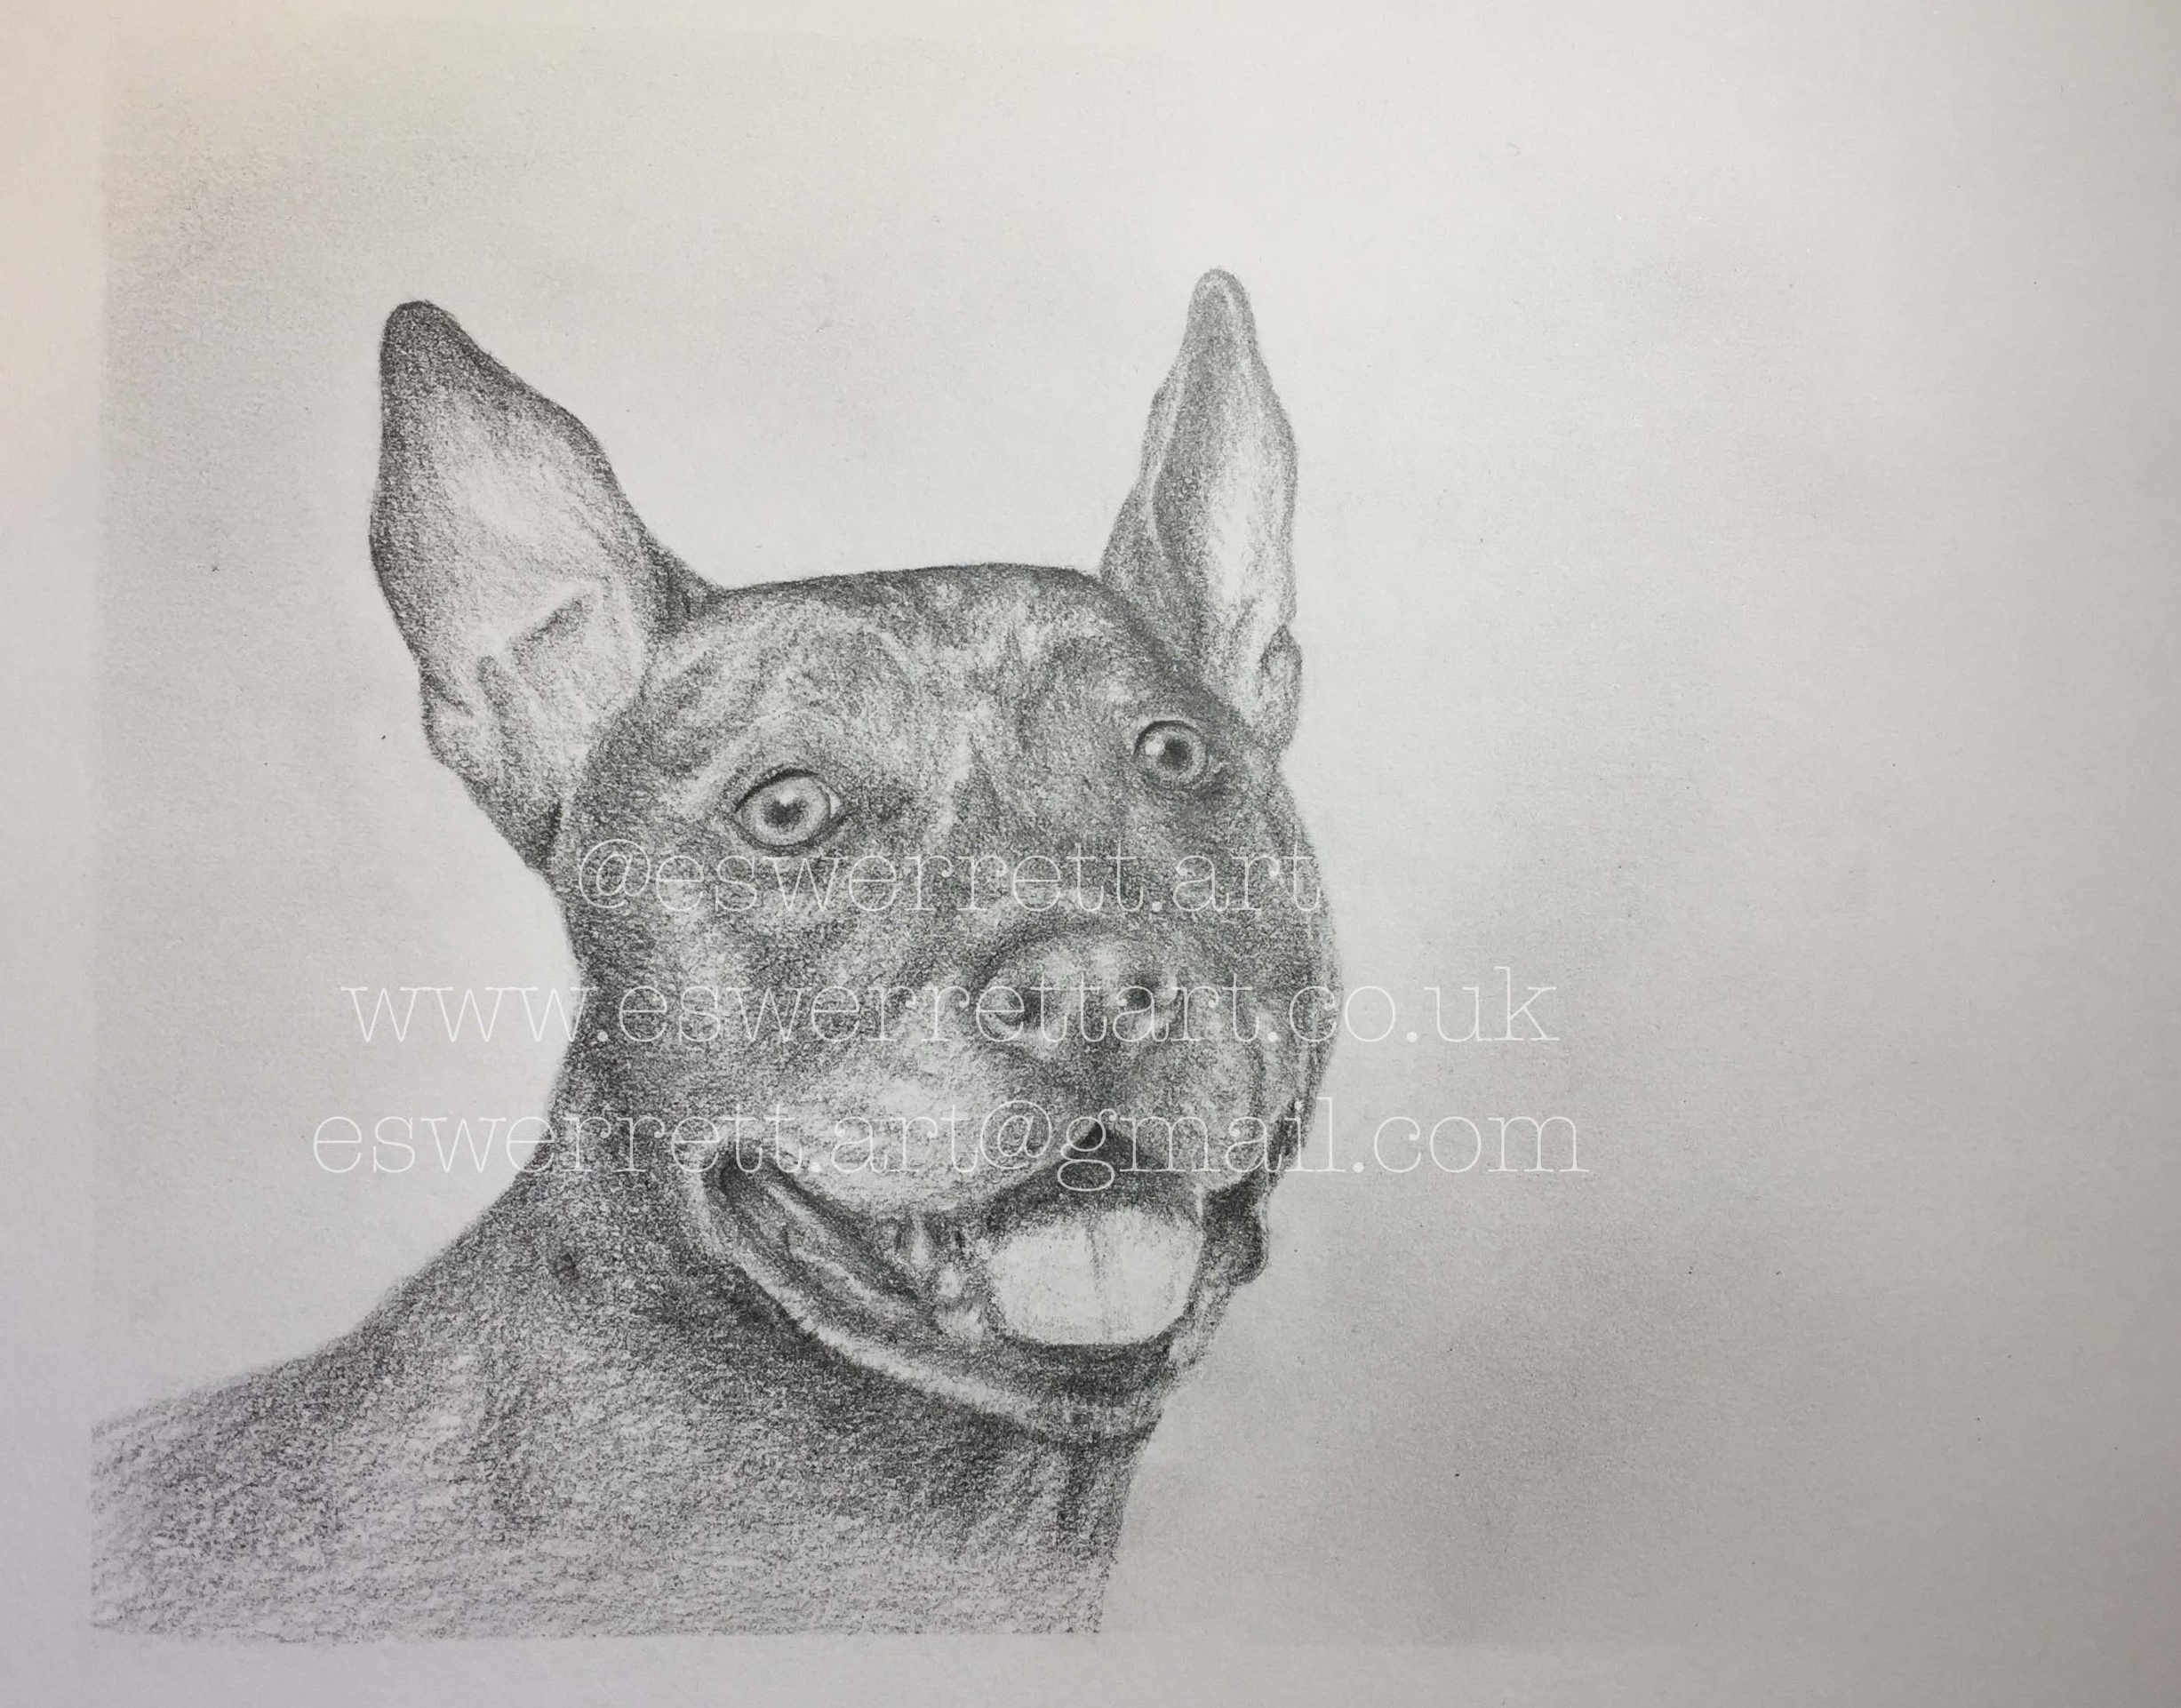 'Zara' - 5 x 7 inches in Graphite Pencil